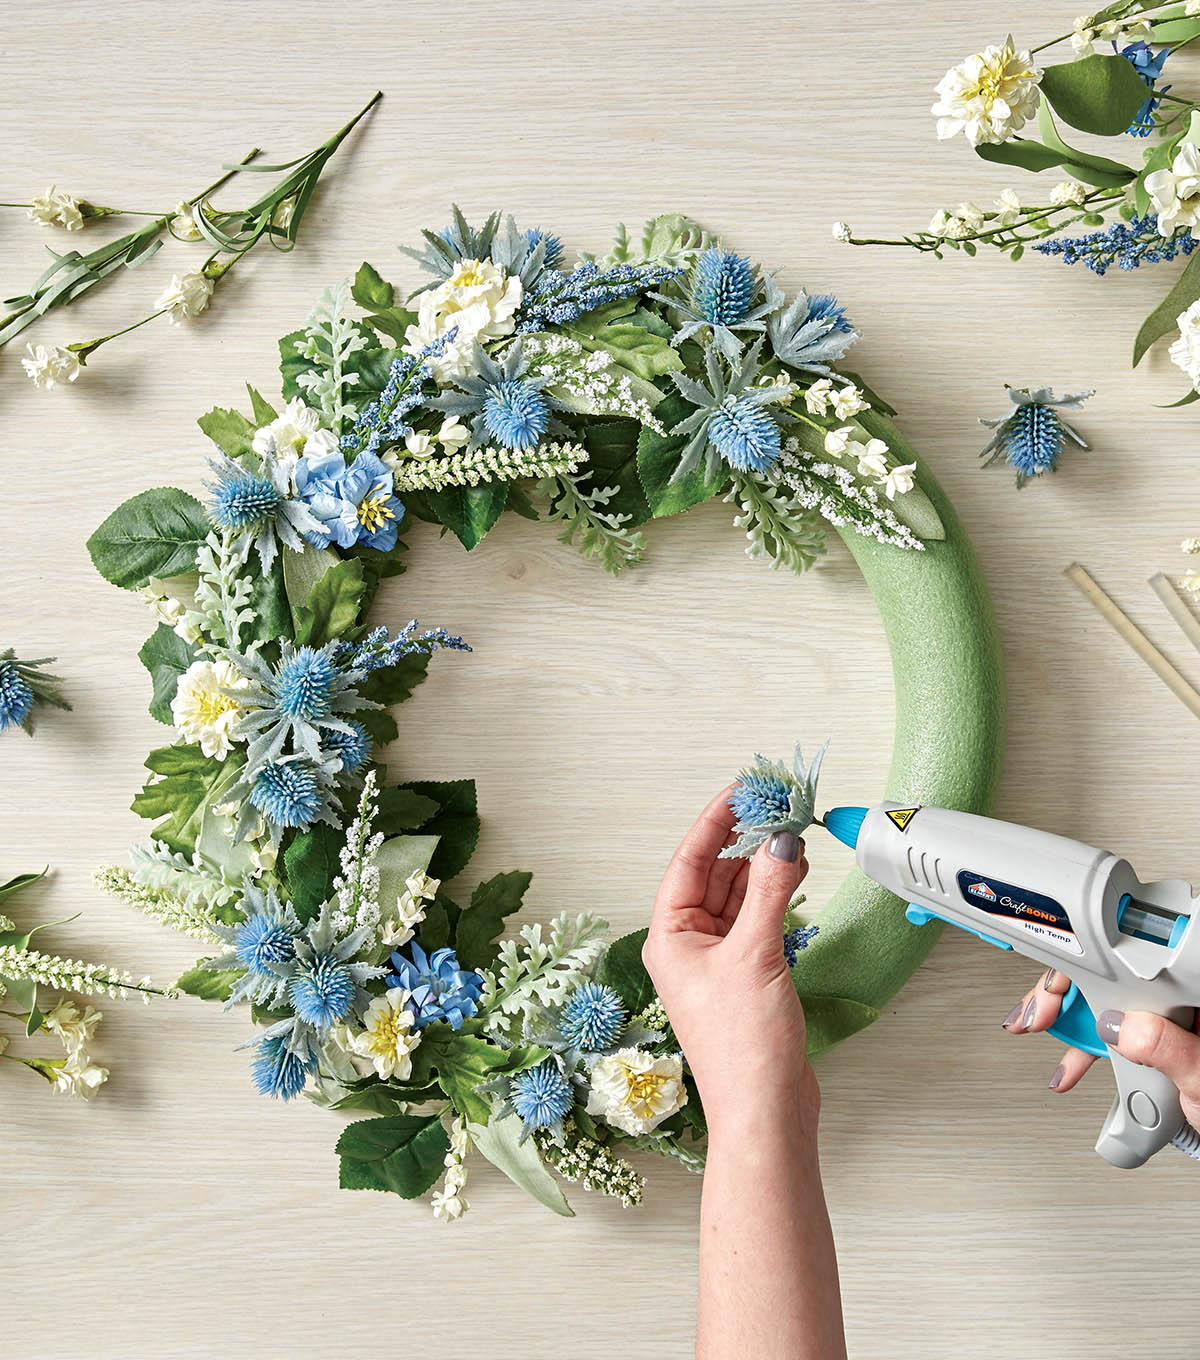 How to make a floral wreath joann how to make a floral wreath izmirmasajfo